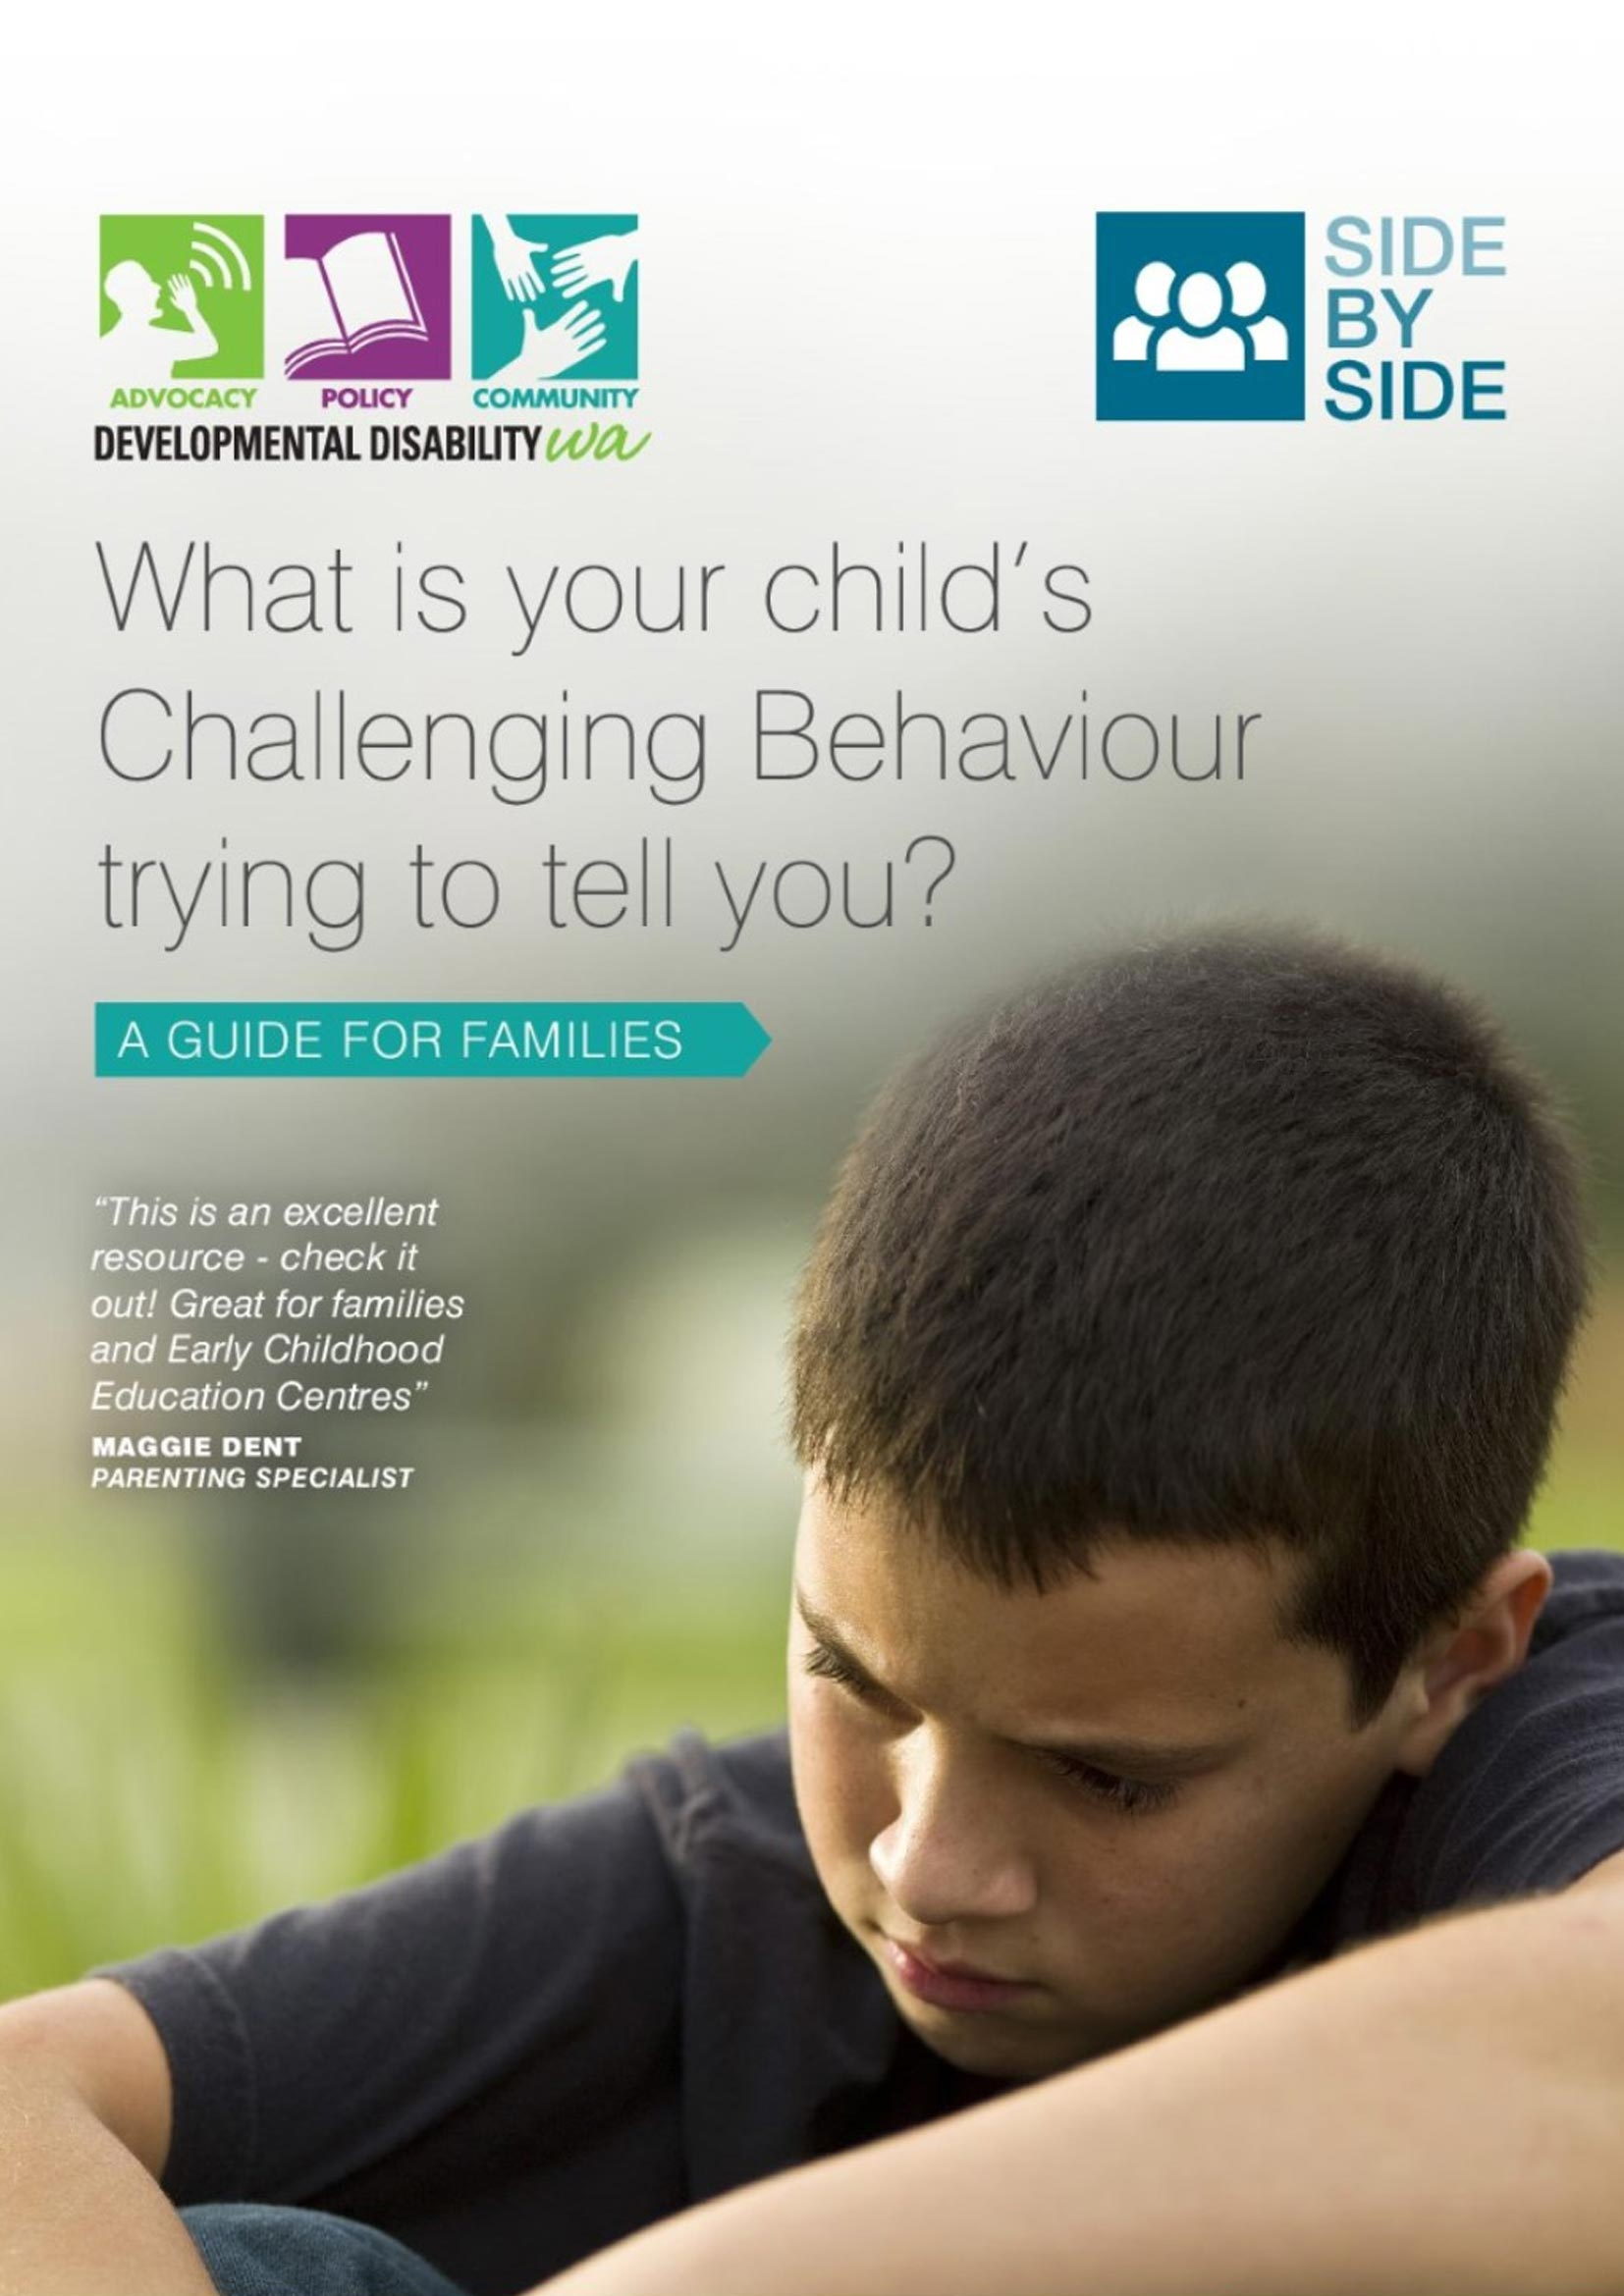 What is your child's challenging behaviour trying to tell you?